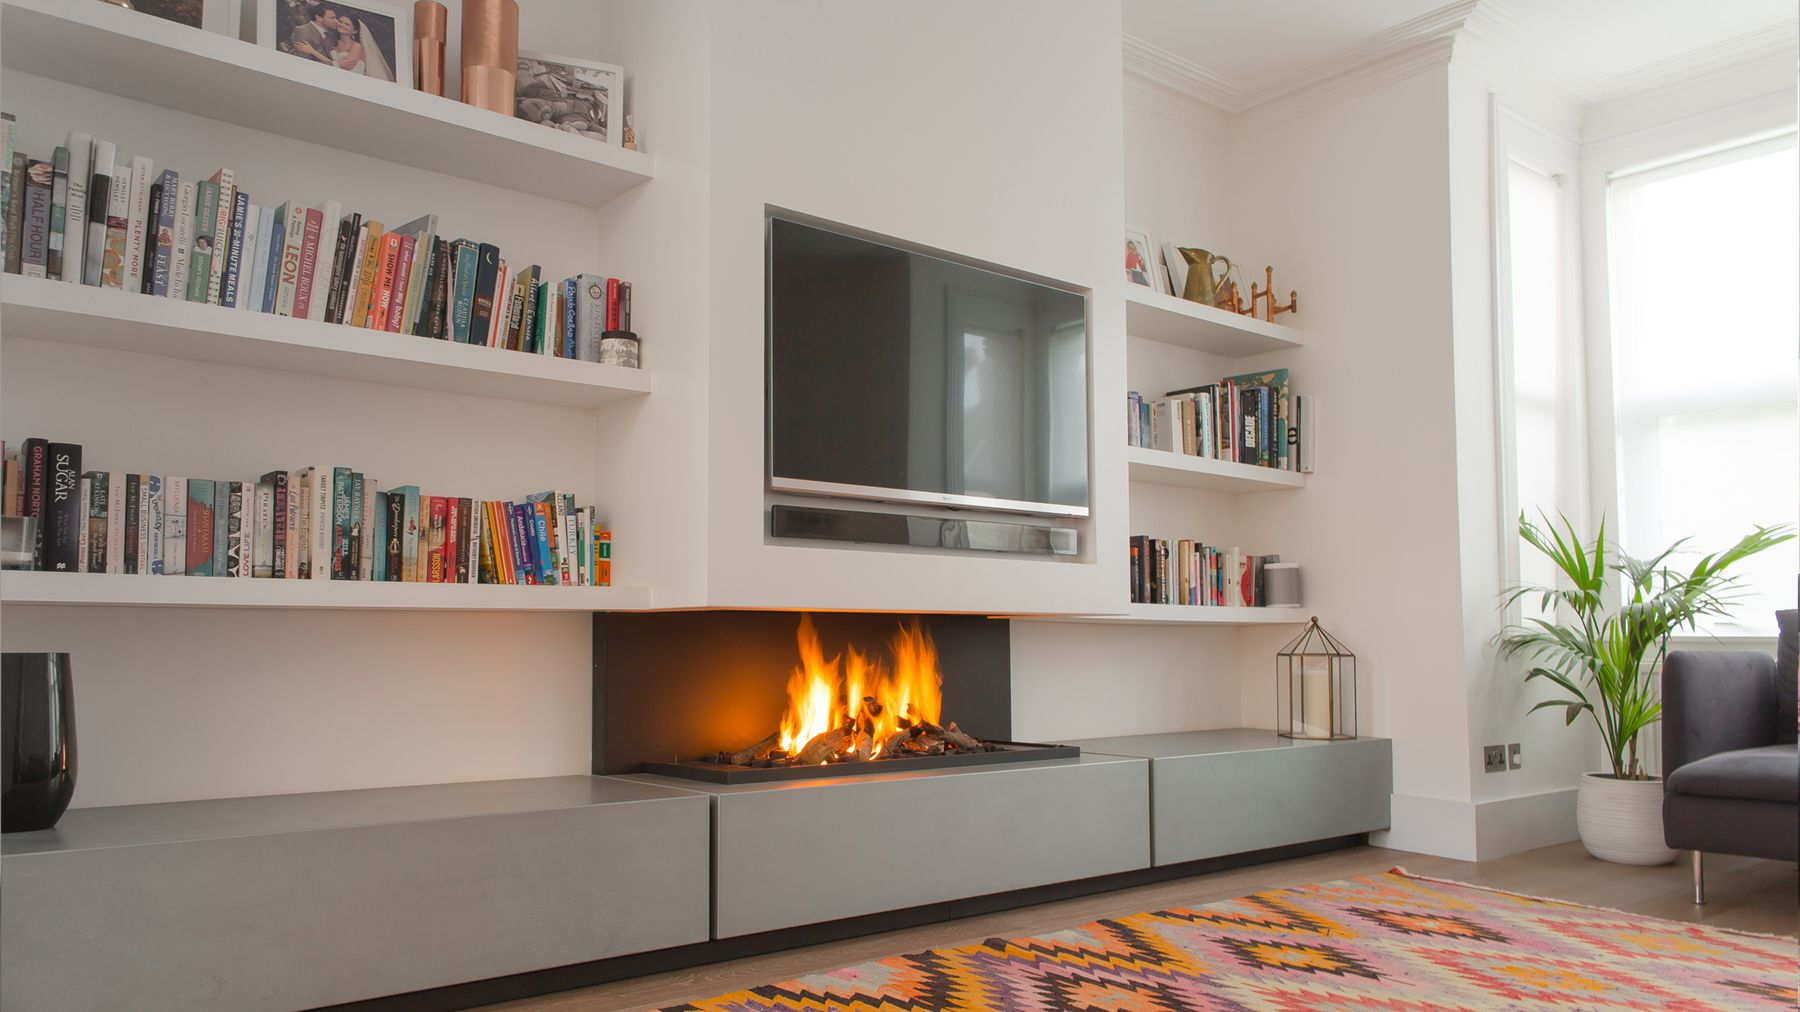 Elegant Design Of The White Wall Added With White Shelves And Modern Gas Fireplace Ideas